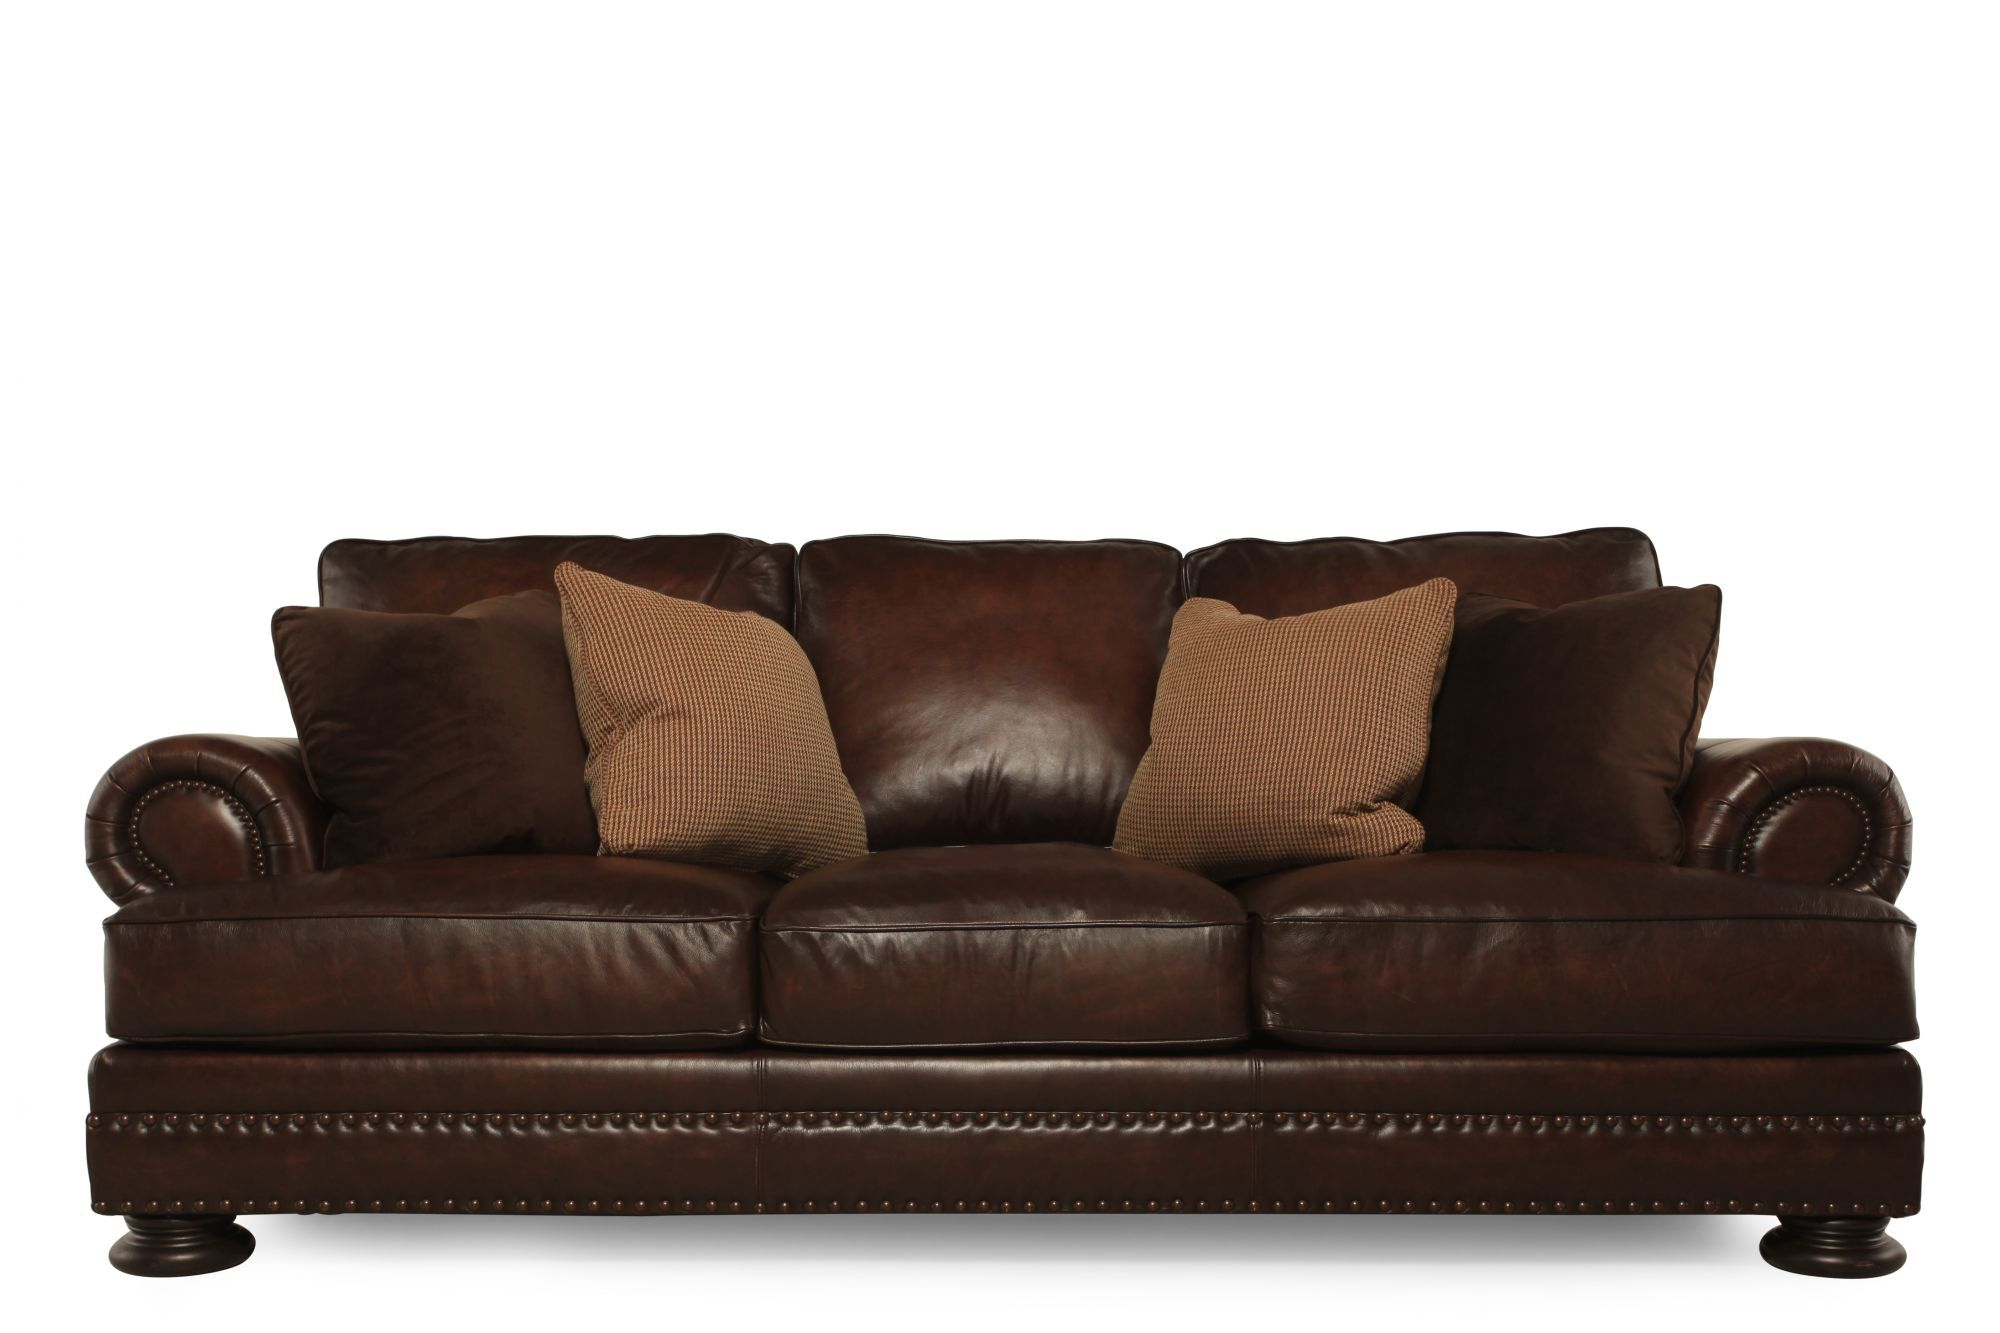 Bernhardt Leather Chair Bernhardt Foster Leather Sofa Mathis Brothers Furniture